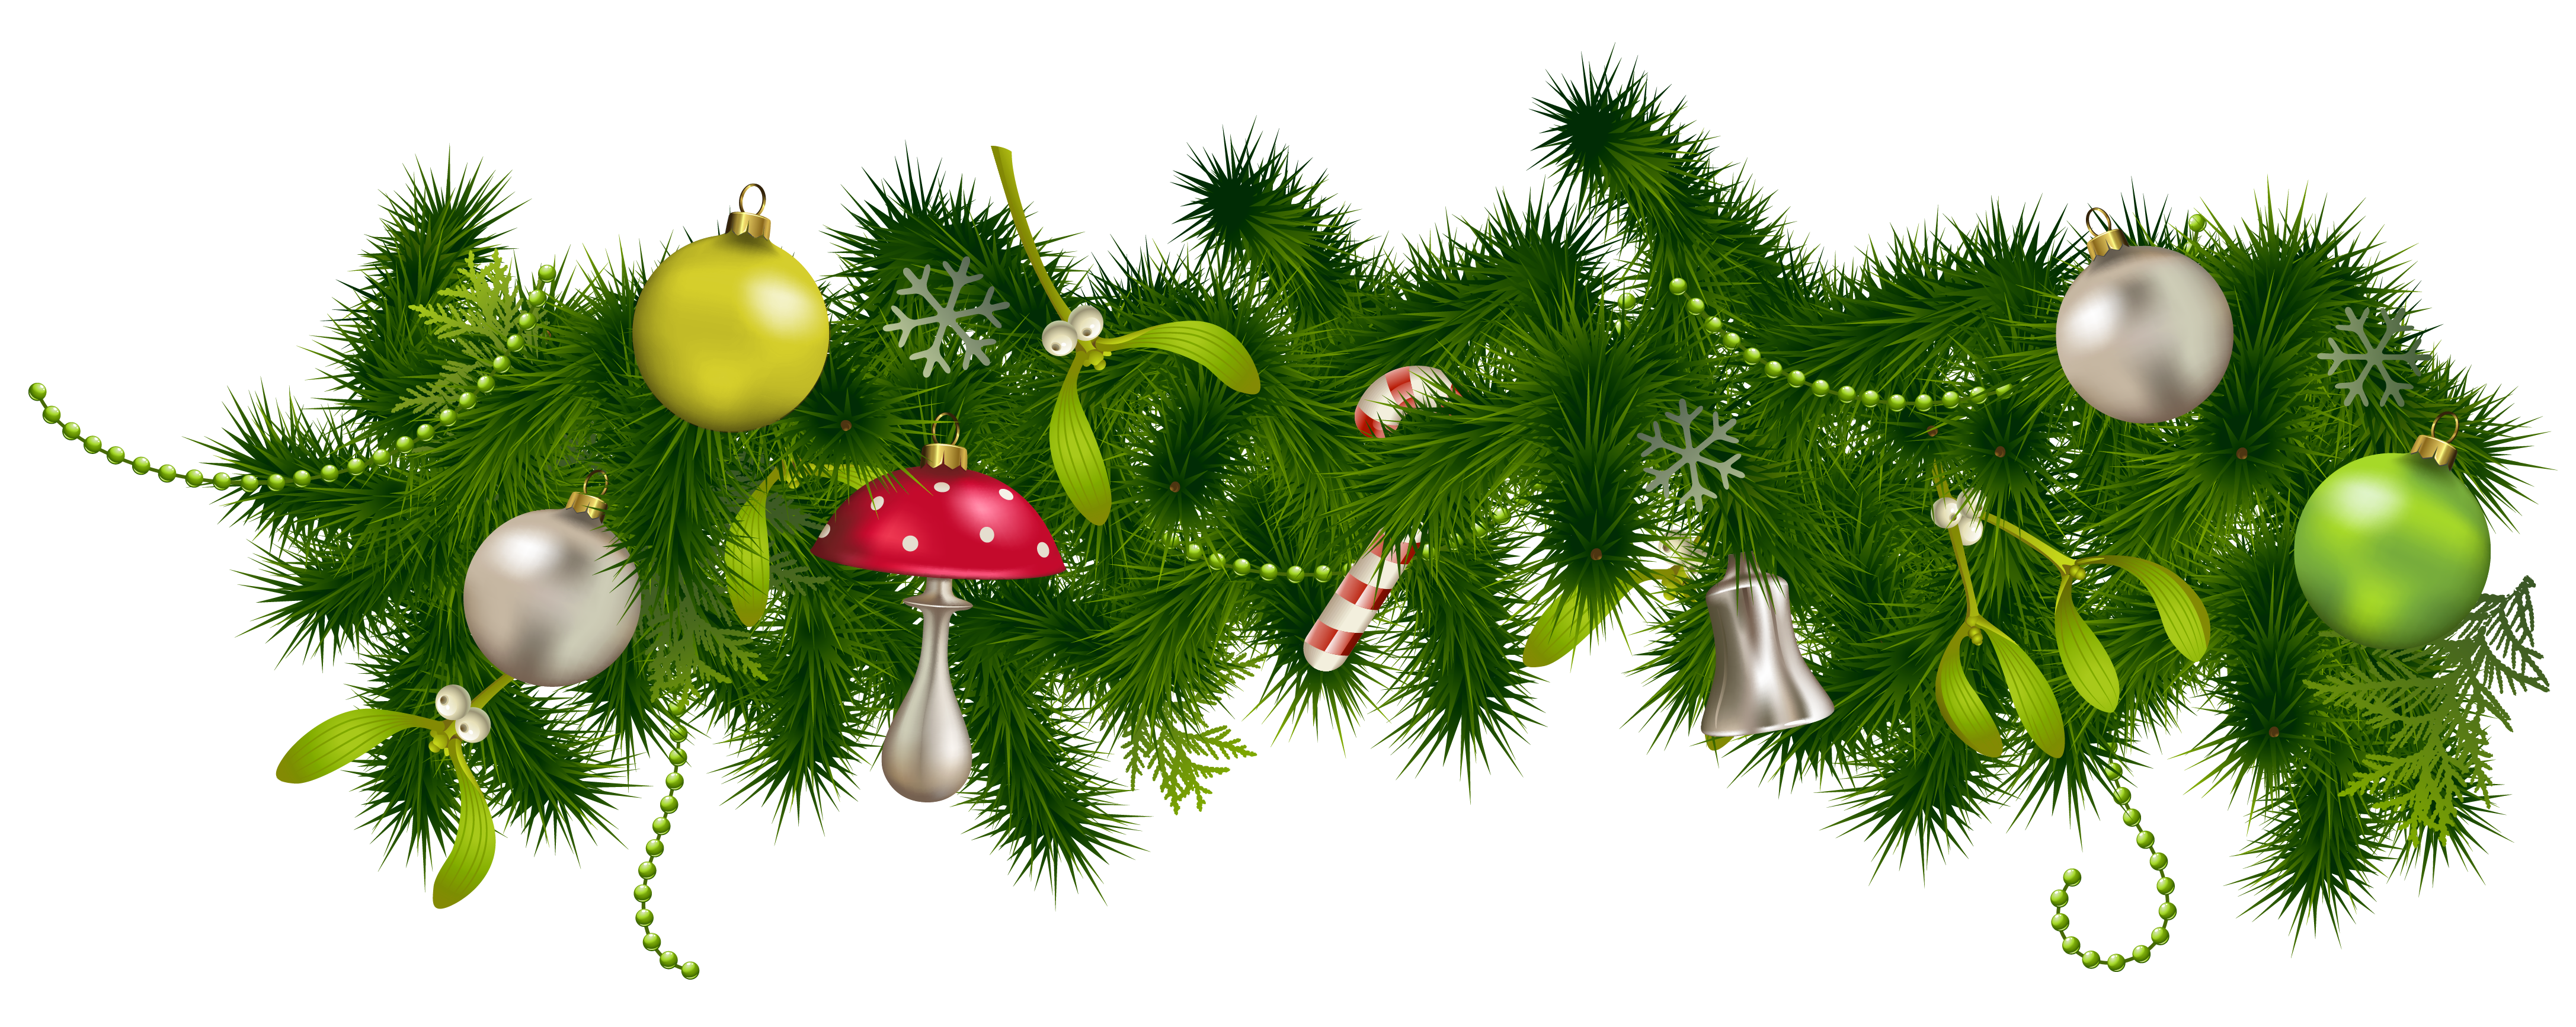 Free christmas garland clipart png library download Transparent Christmas Pine Garland Decor PNG Clipart | Gallery ... png library download